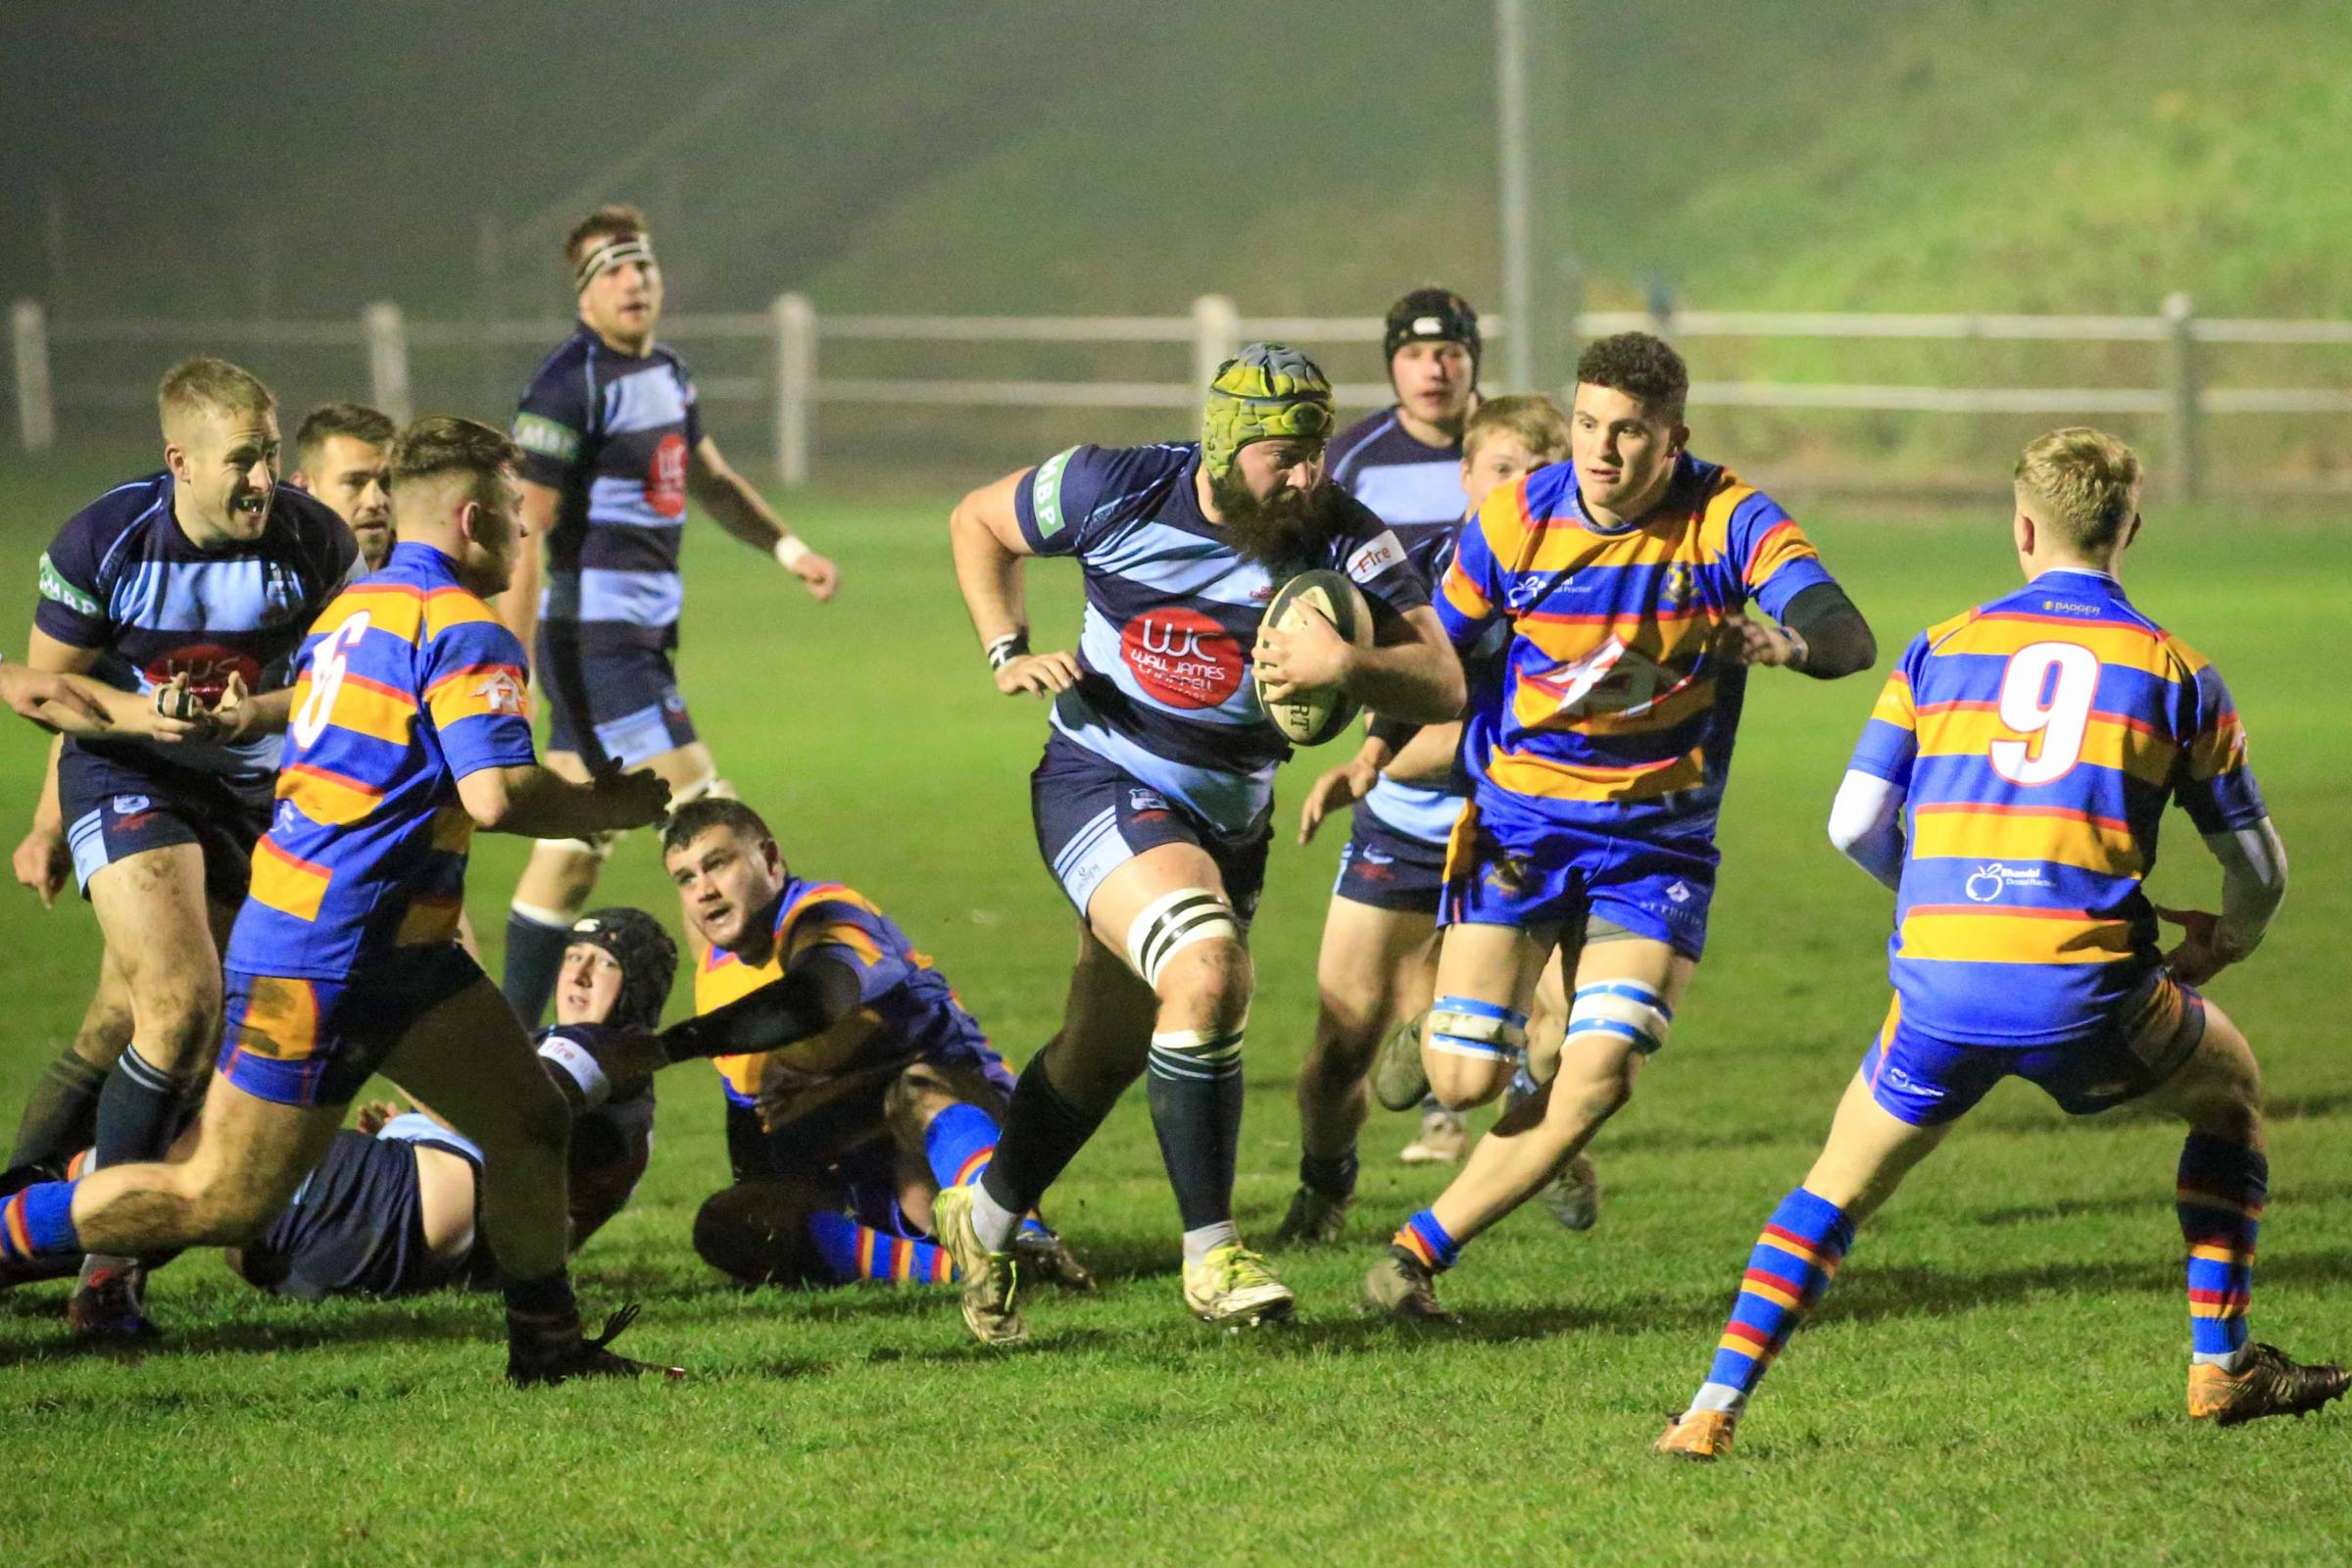 Jake Thompson on the charge for DK. Photo by Ian Jackson